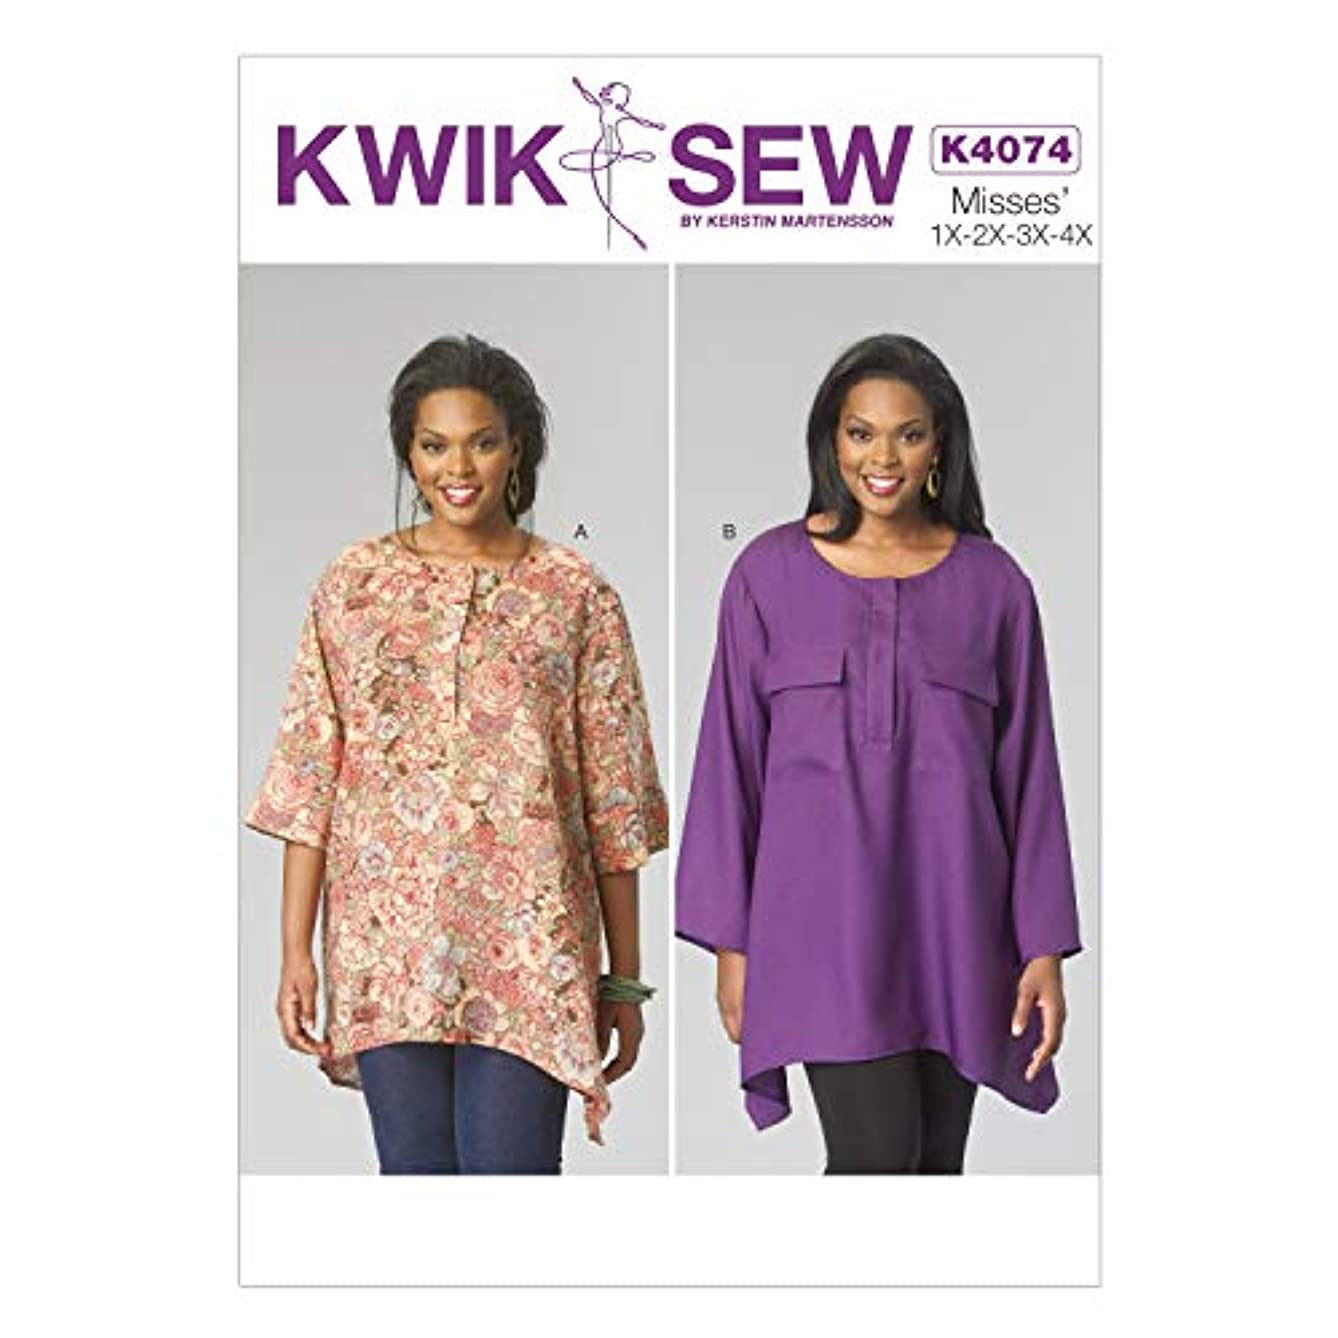 KWIK-SEW PATTERNS K4074 Women's Tops